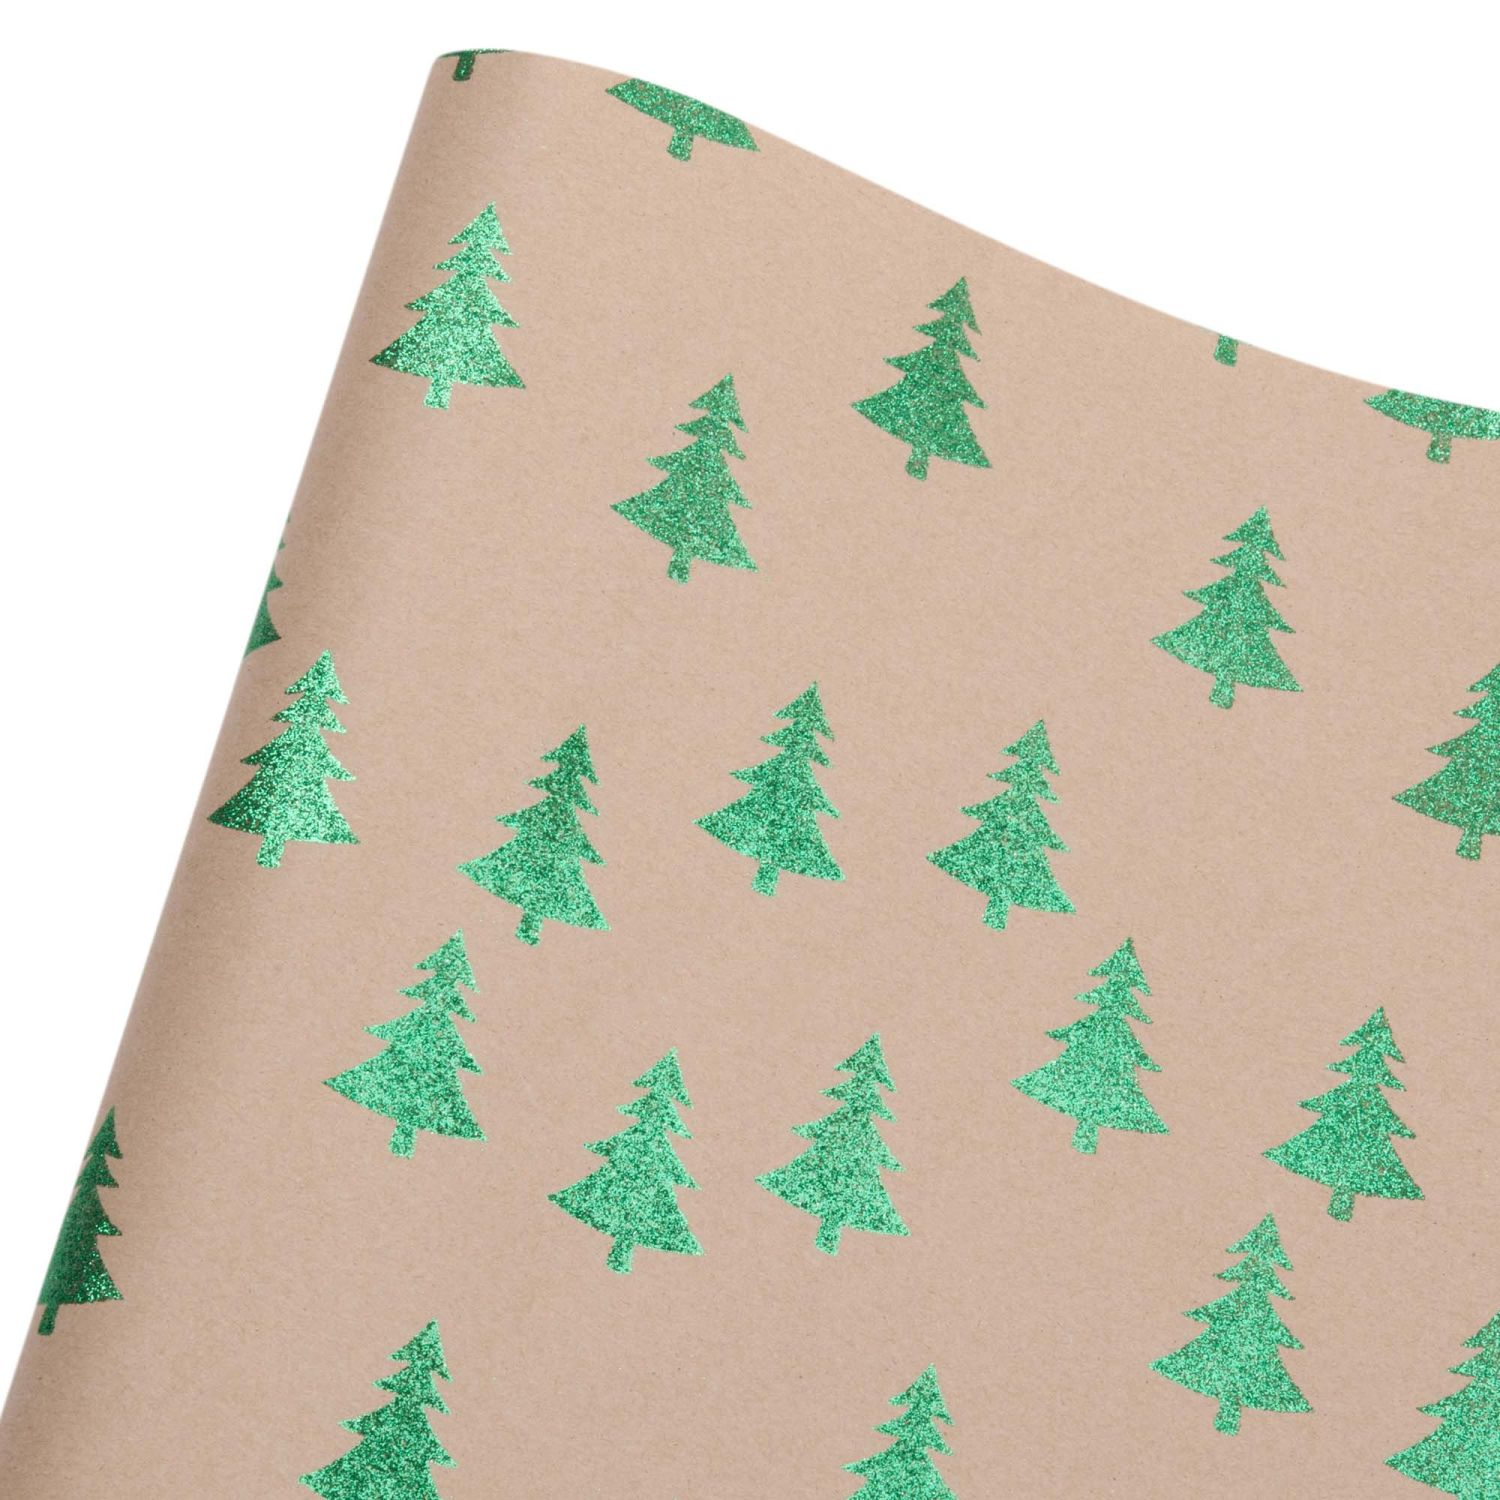 green christmas tree print wrapping paper 1 50m maisons du monde